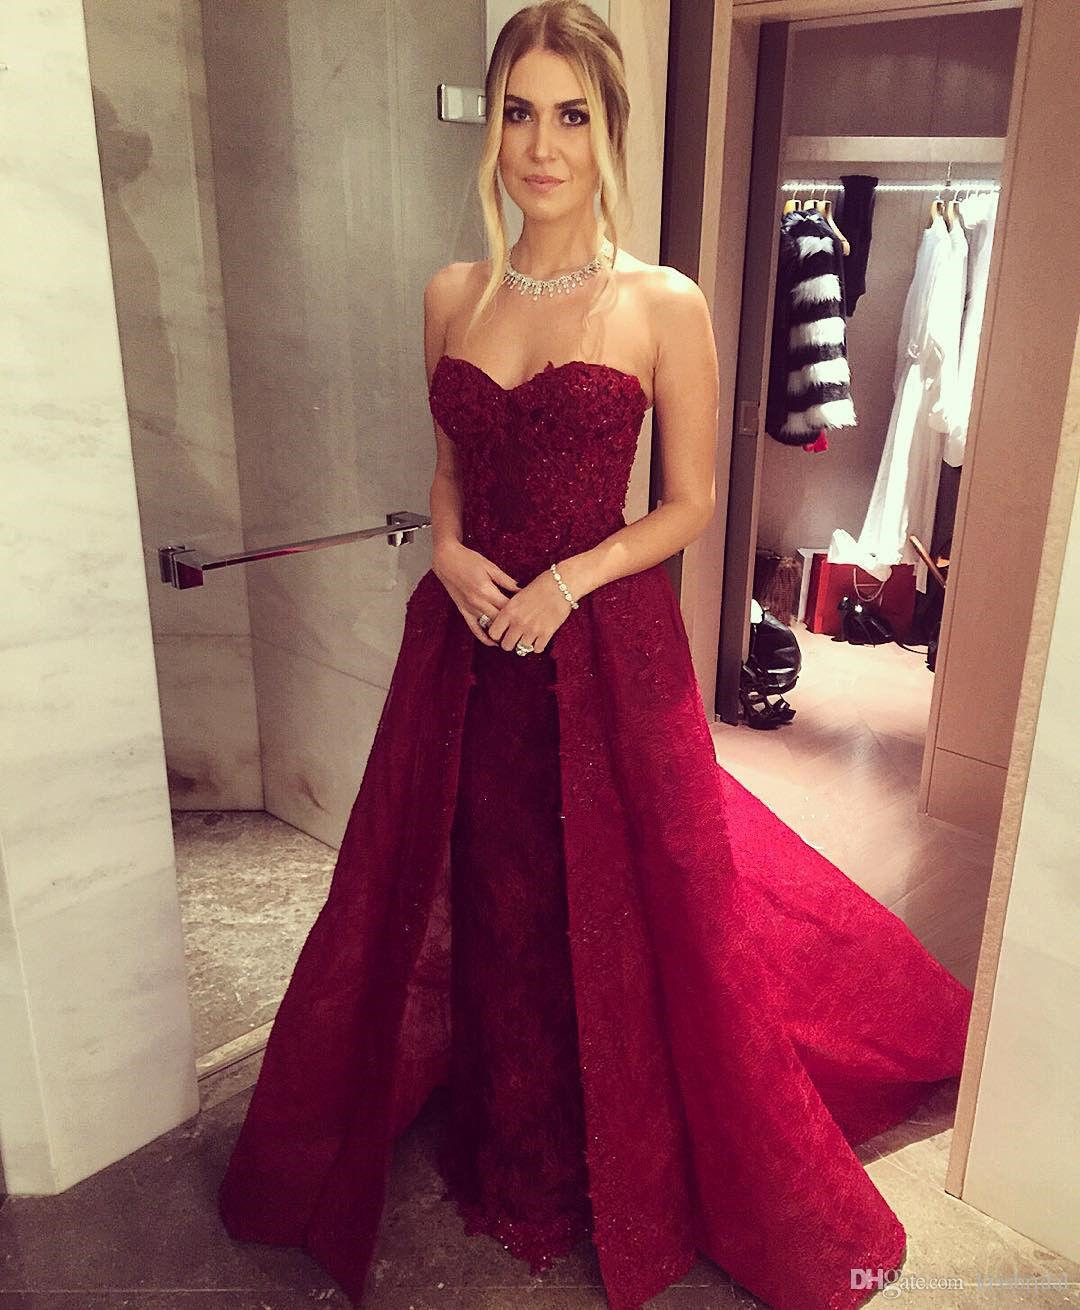 4a5dc97a0e Dark Red Long Prom Dresses With Detachable Skirt Strapless Sweetheart Neckline  Sleeveless Overskirts Formal Evening Gowns Beaded Lace Dress Prom Dress ...